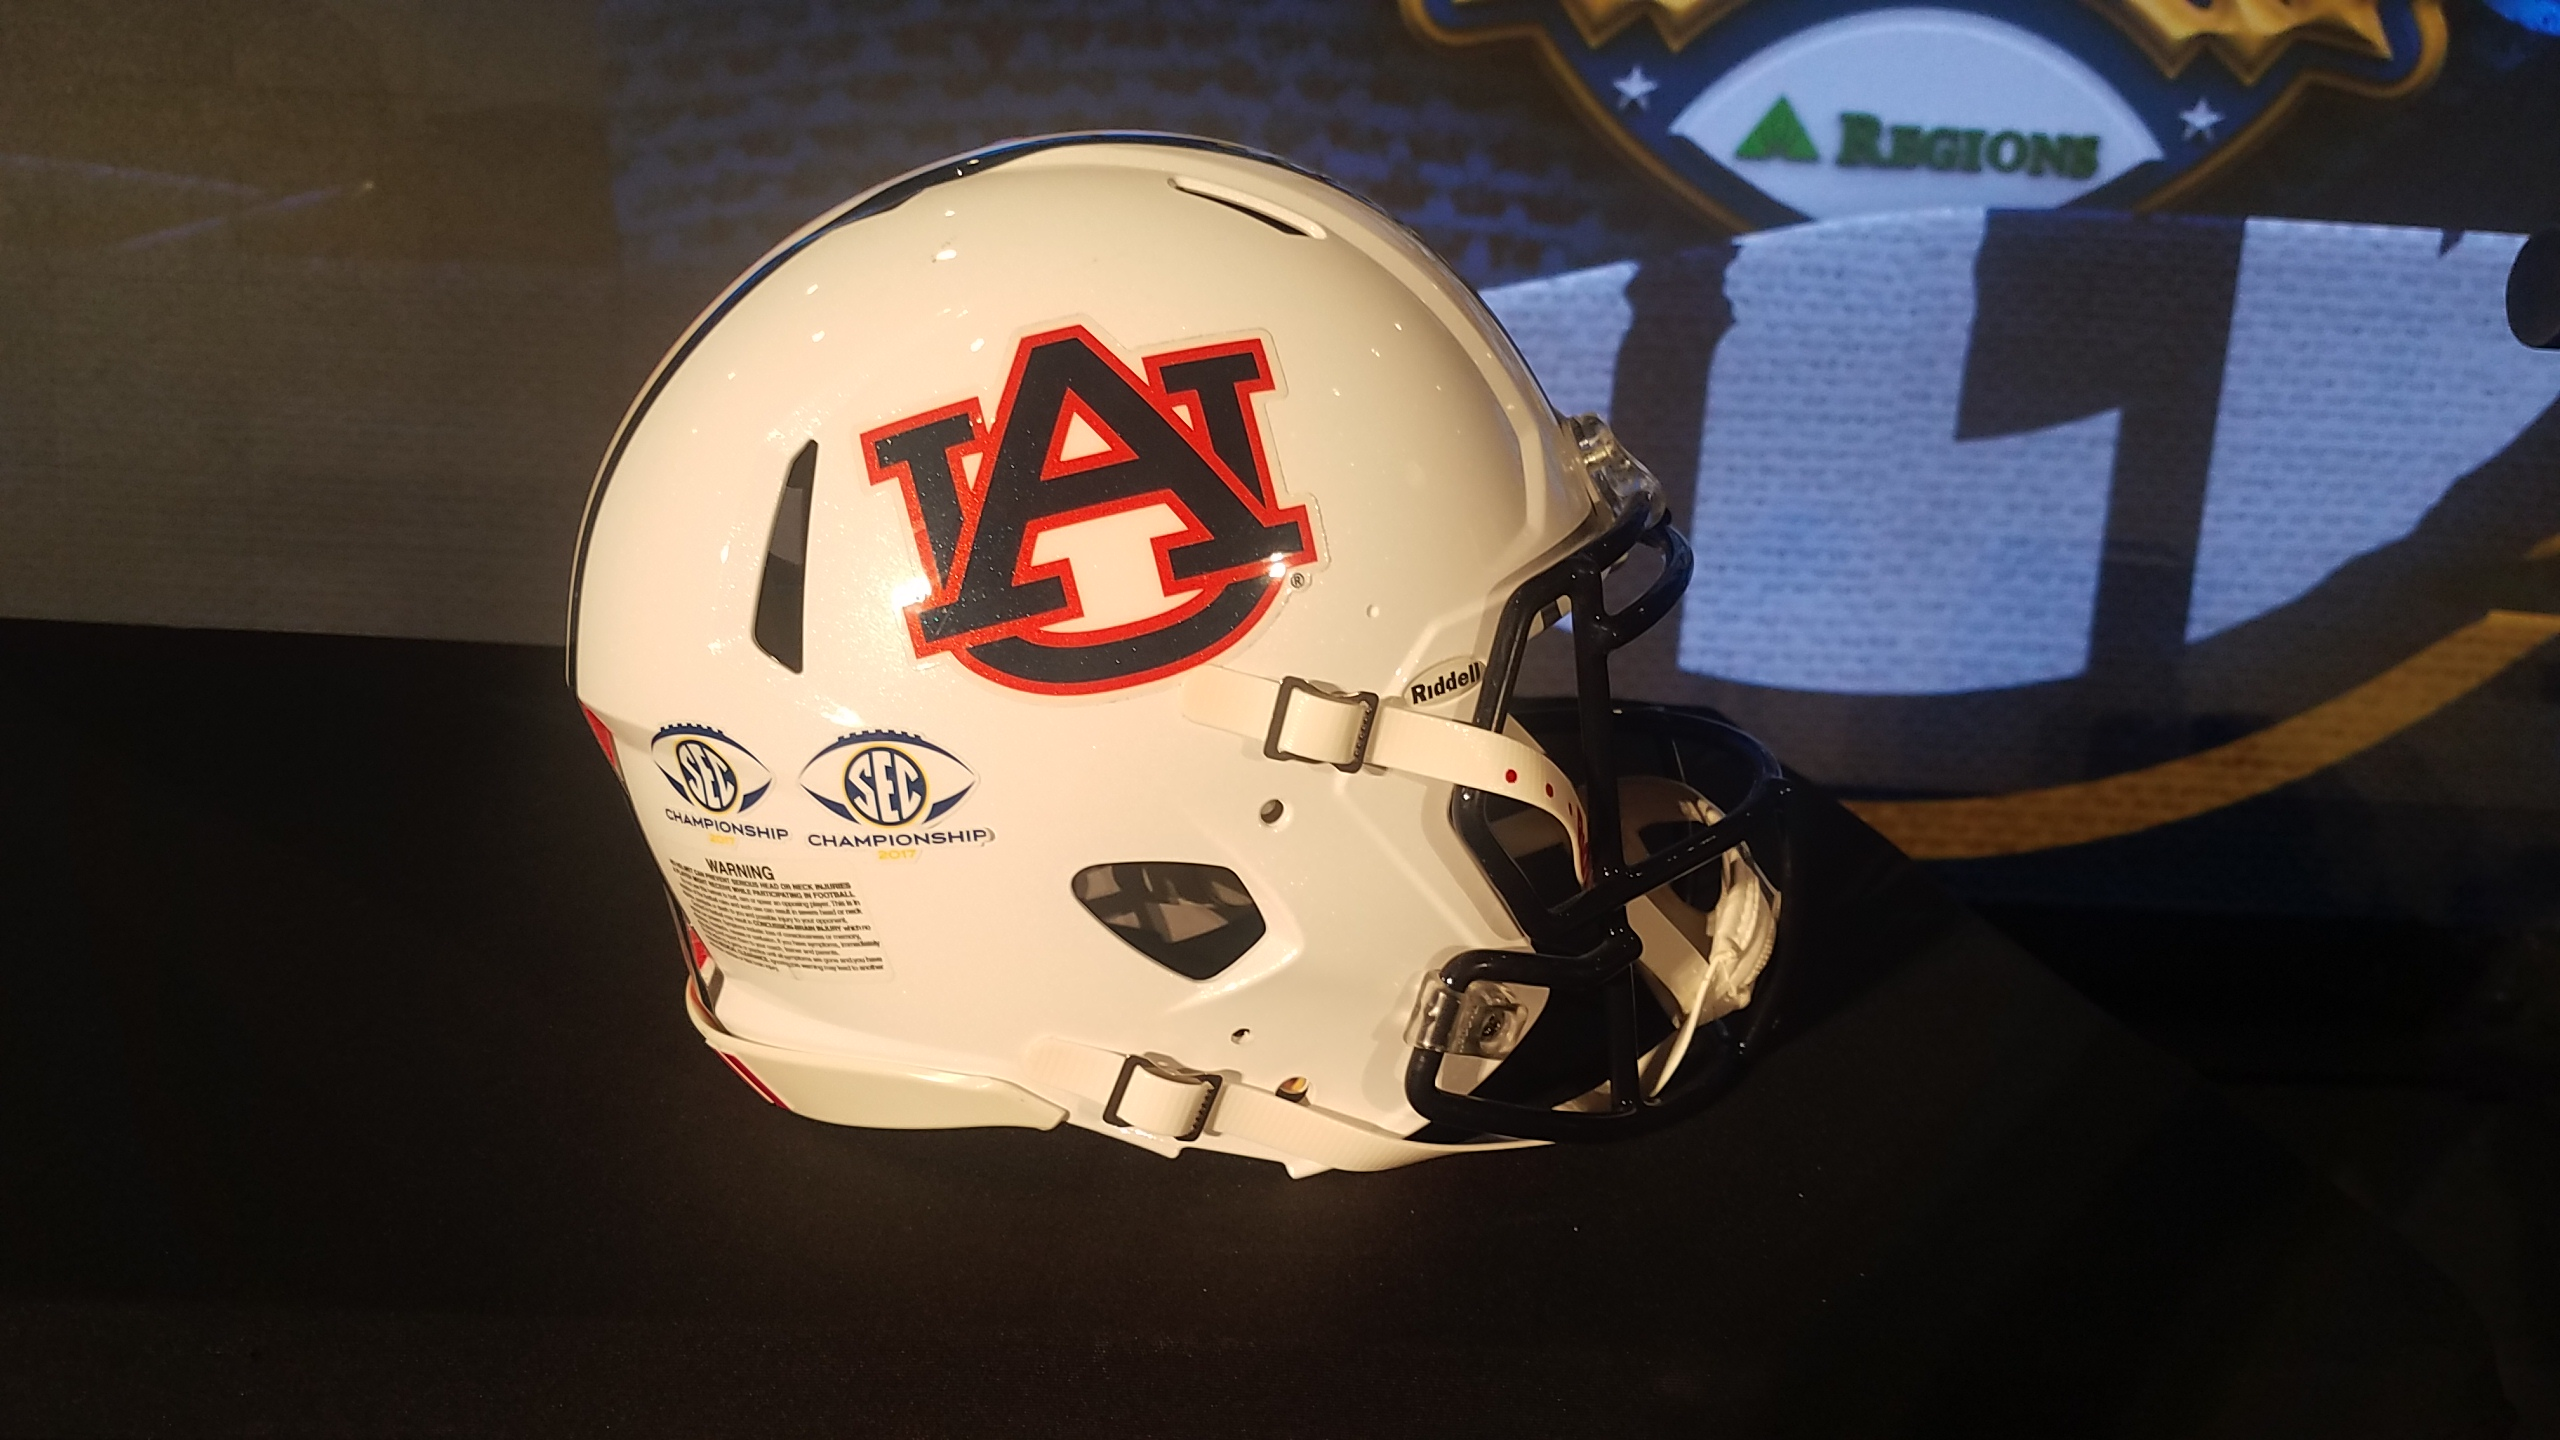 VIDEOS/PODCASTS: Everything from Auburn at #SECMD21